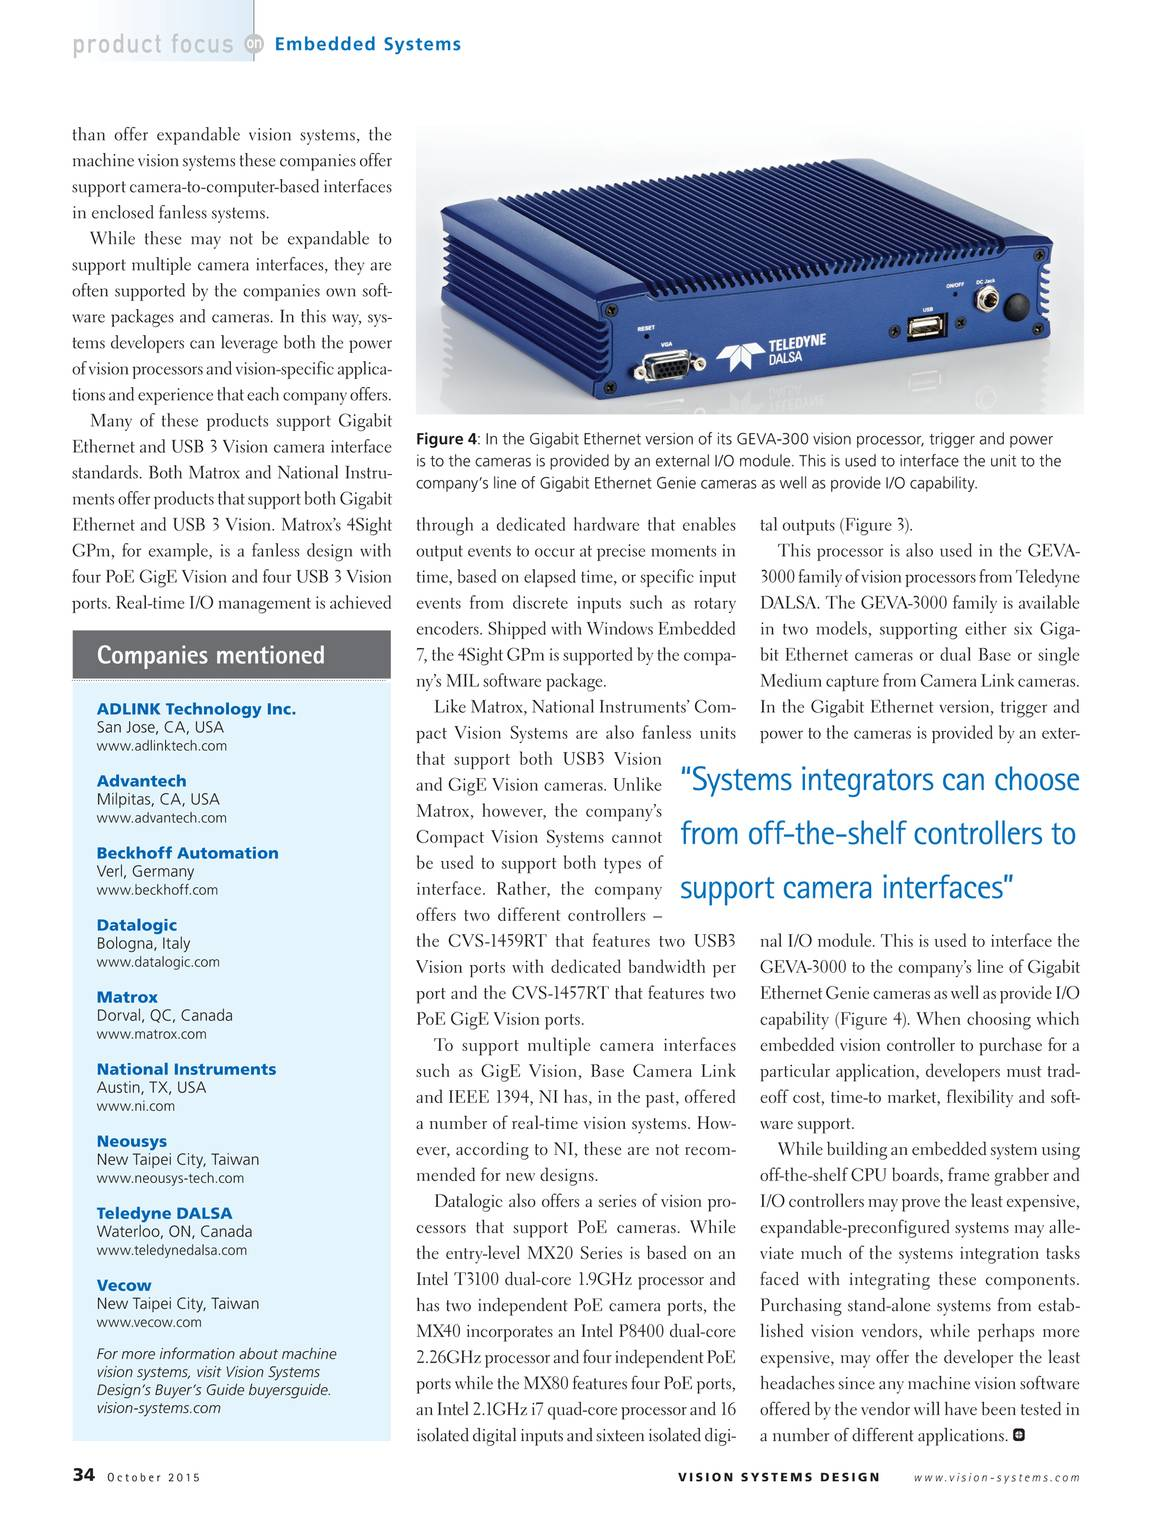 Vision Systems - October 2015 - page 34